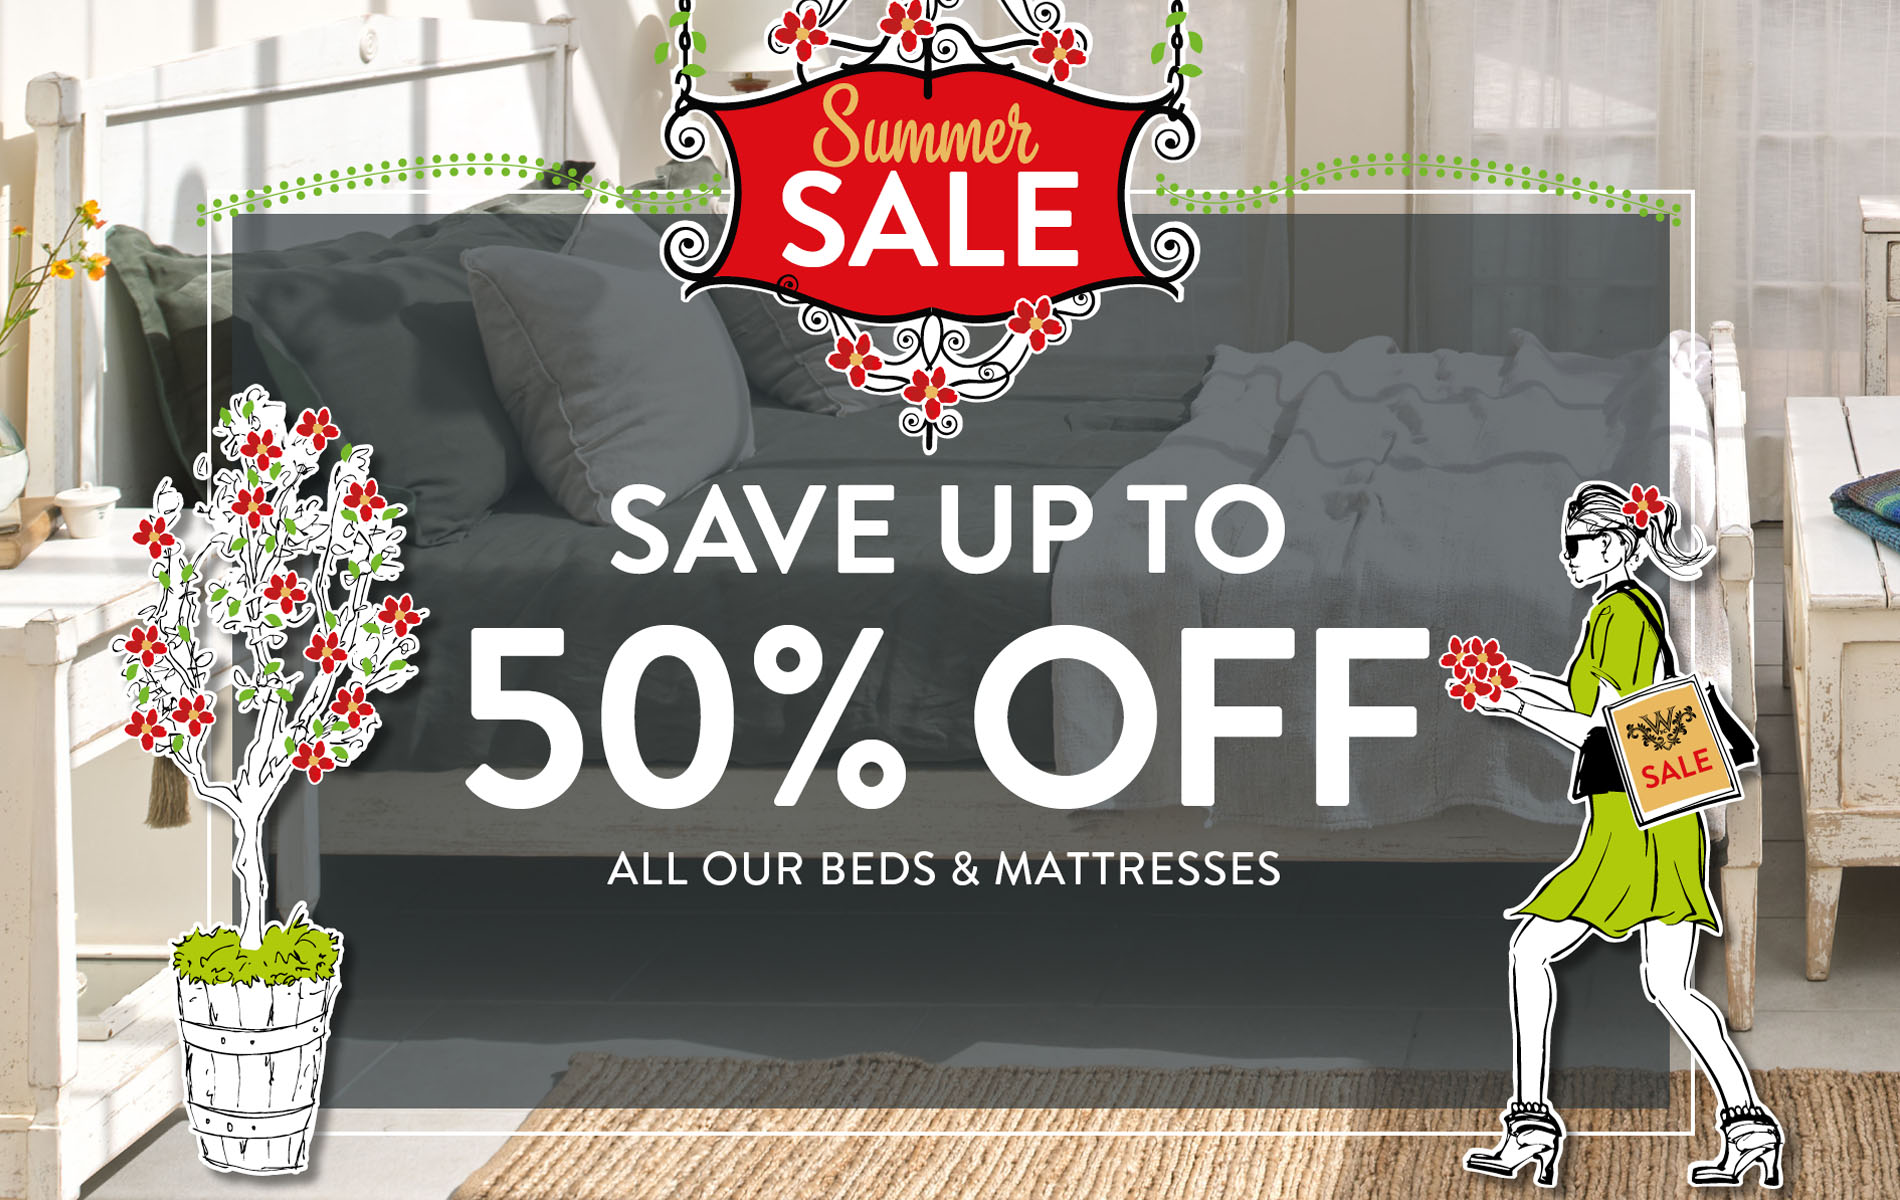 SAVE UP TO 50% OFF ALL OUR BEDS & MATTRESSES